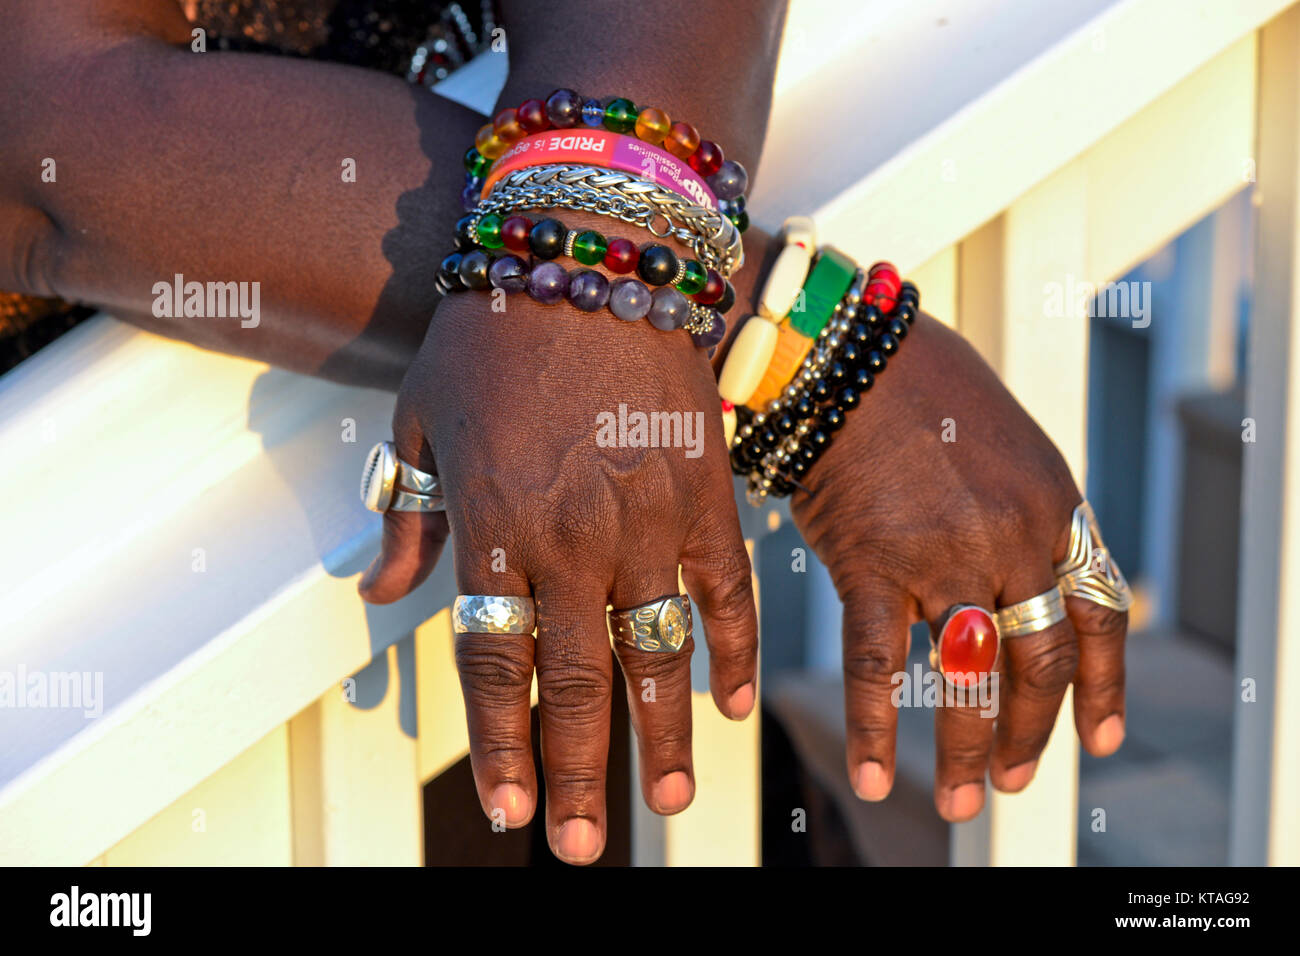 Femme afro-américaine portant un assortiment de bijoux colorés Photo Stock